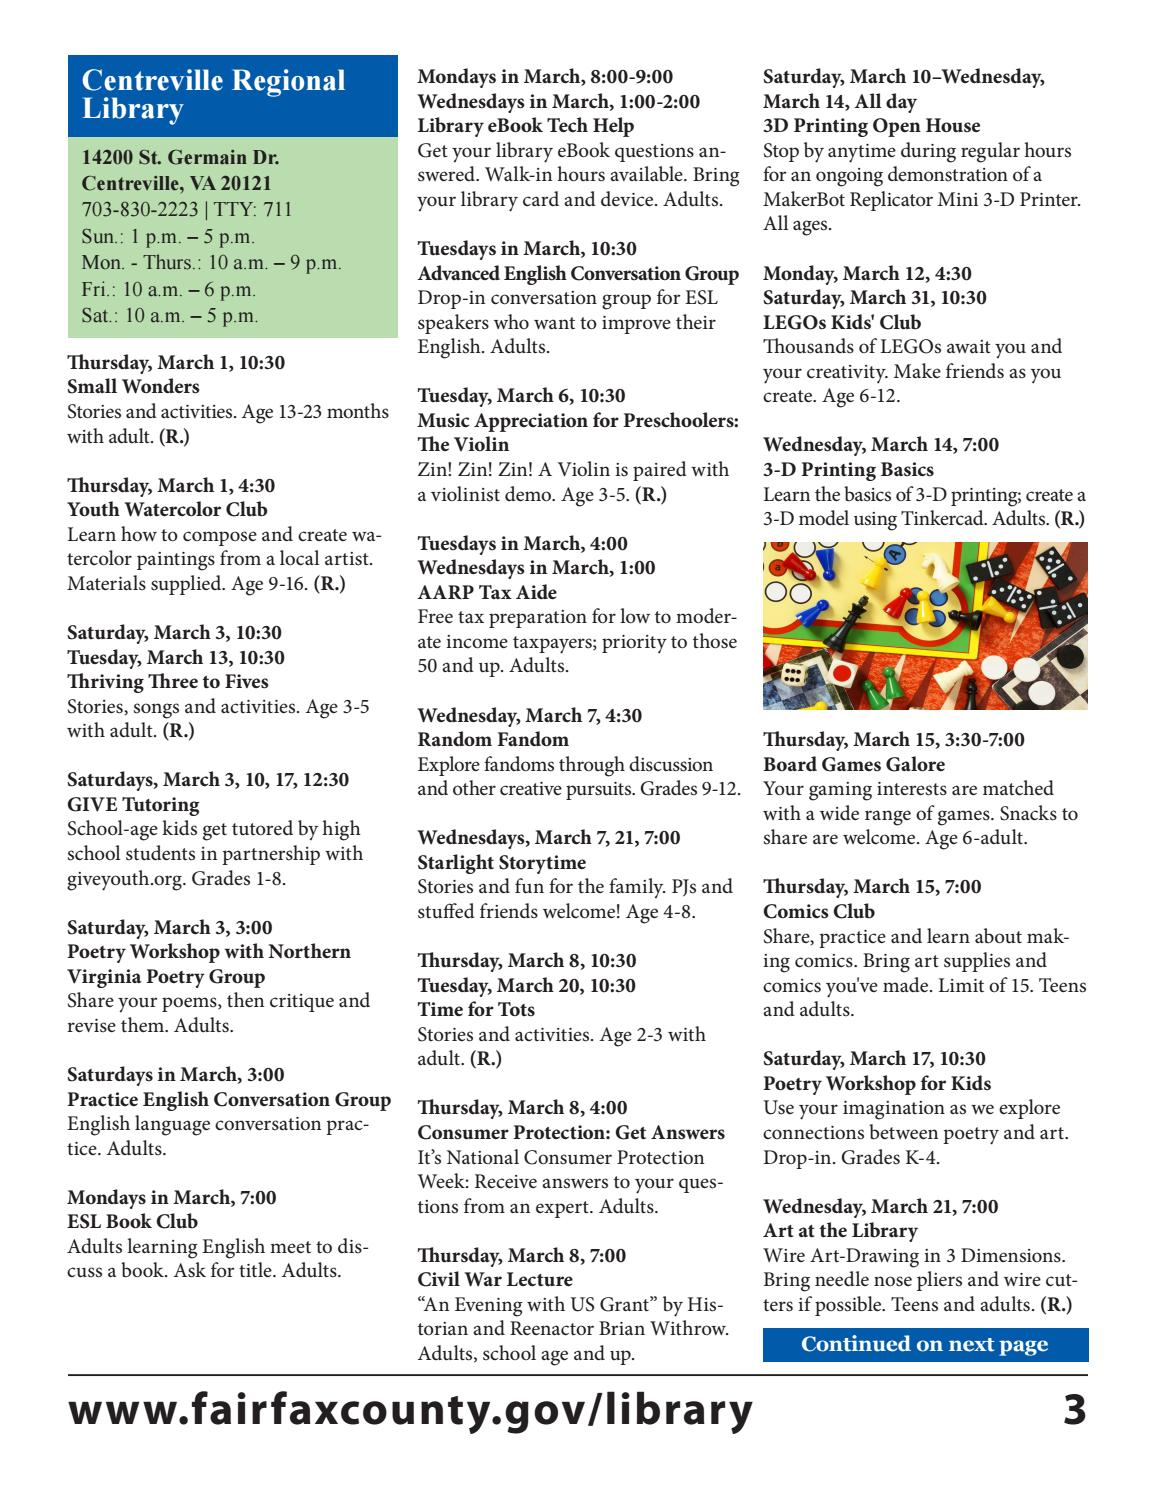 March 2018 Free Events Calendar by Fairfax County Public Library - issuu